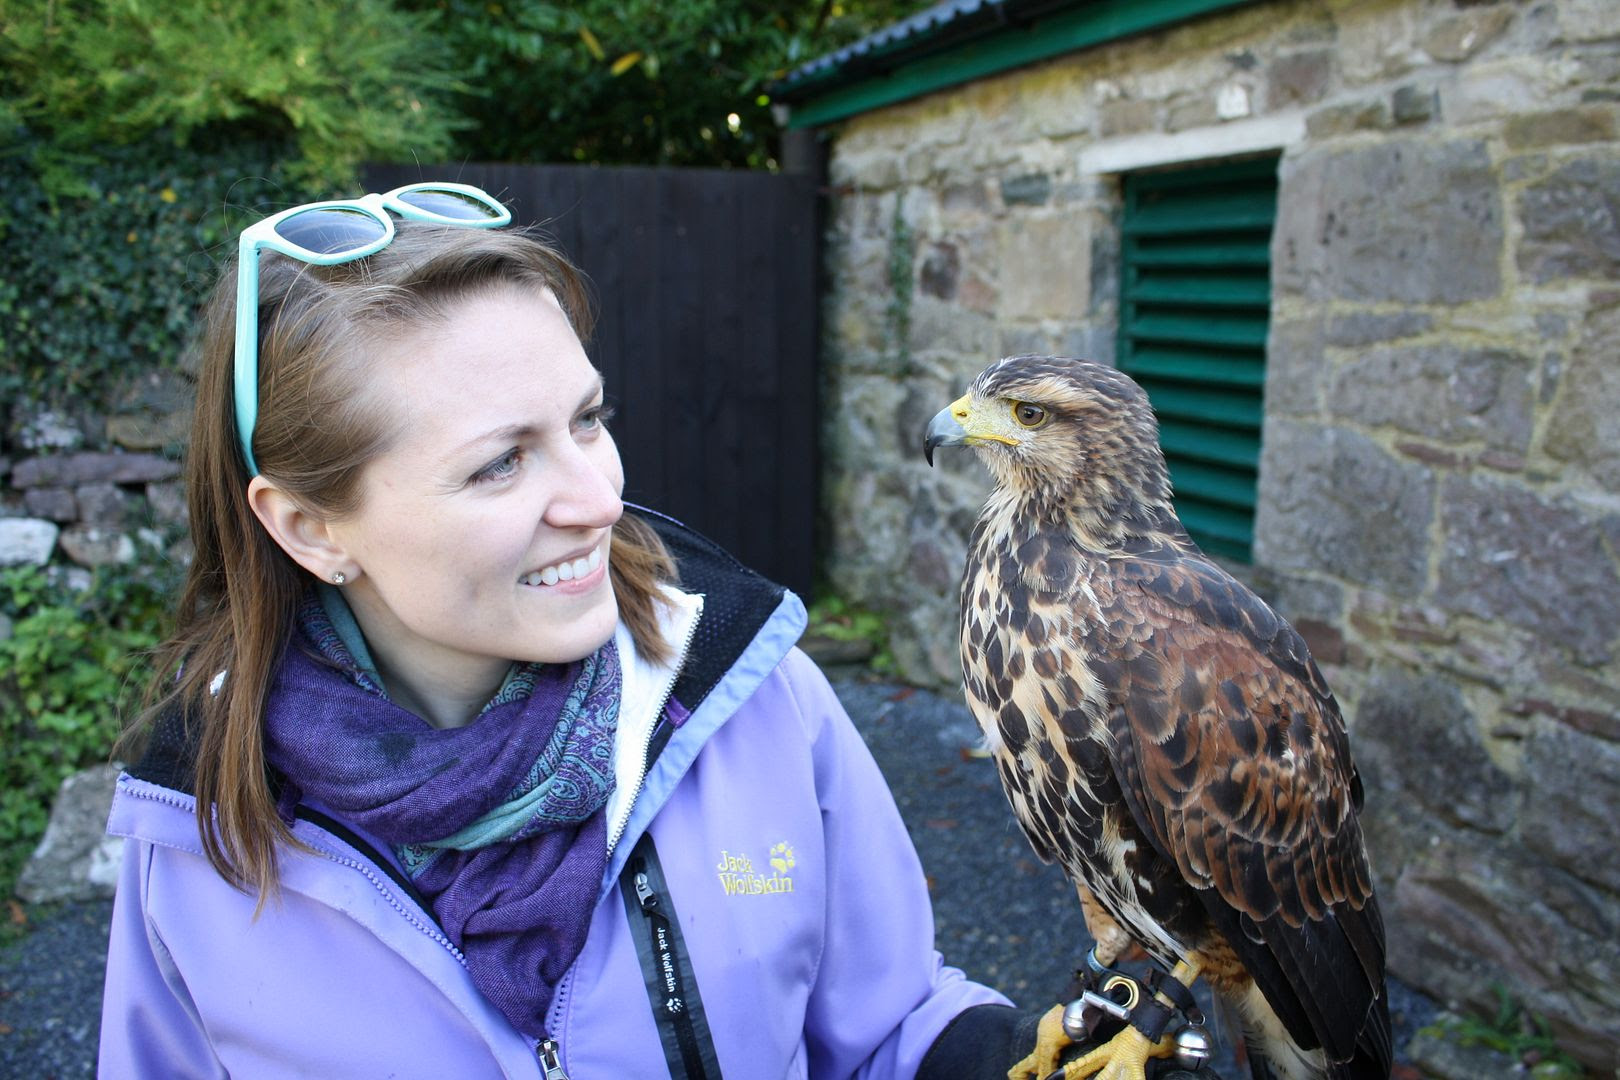 Ireland's School of Falconry Hawk Walk photo IMG_2650_zps8o3ddxkr.jpg